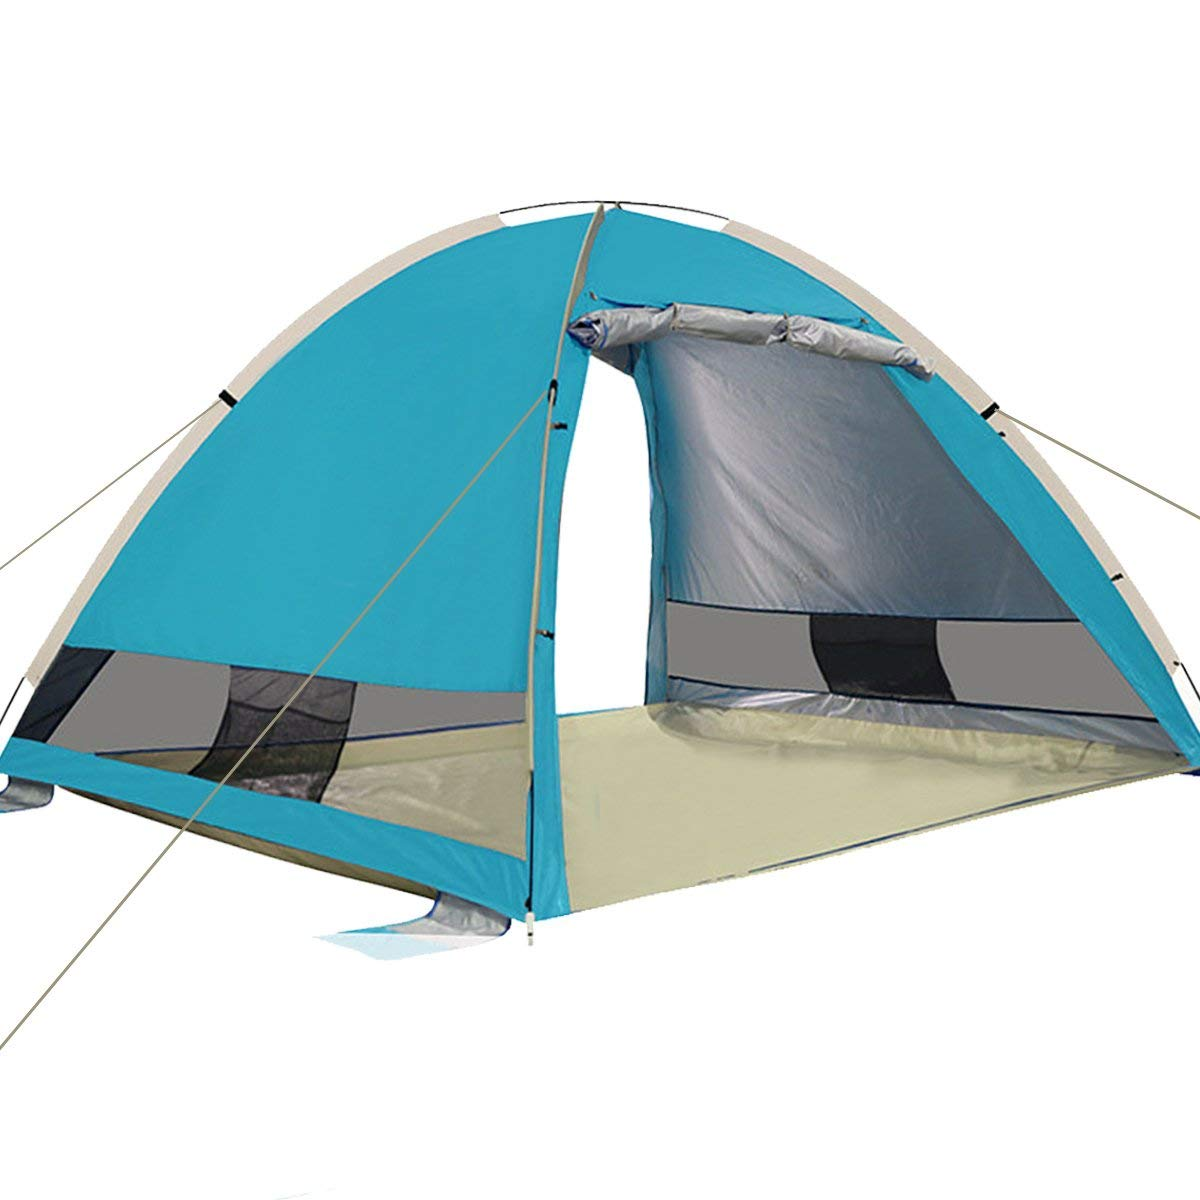 G4Free Large Pop-up Beach Tent